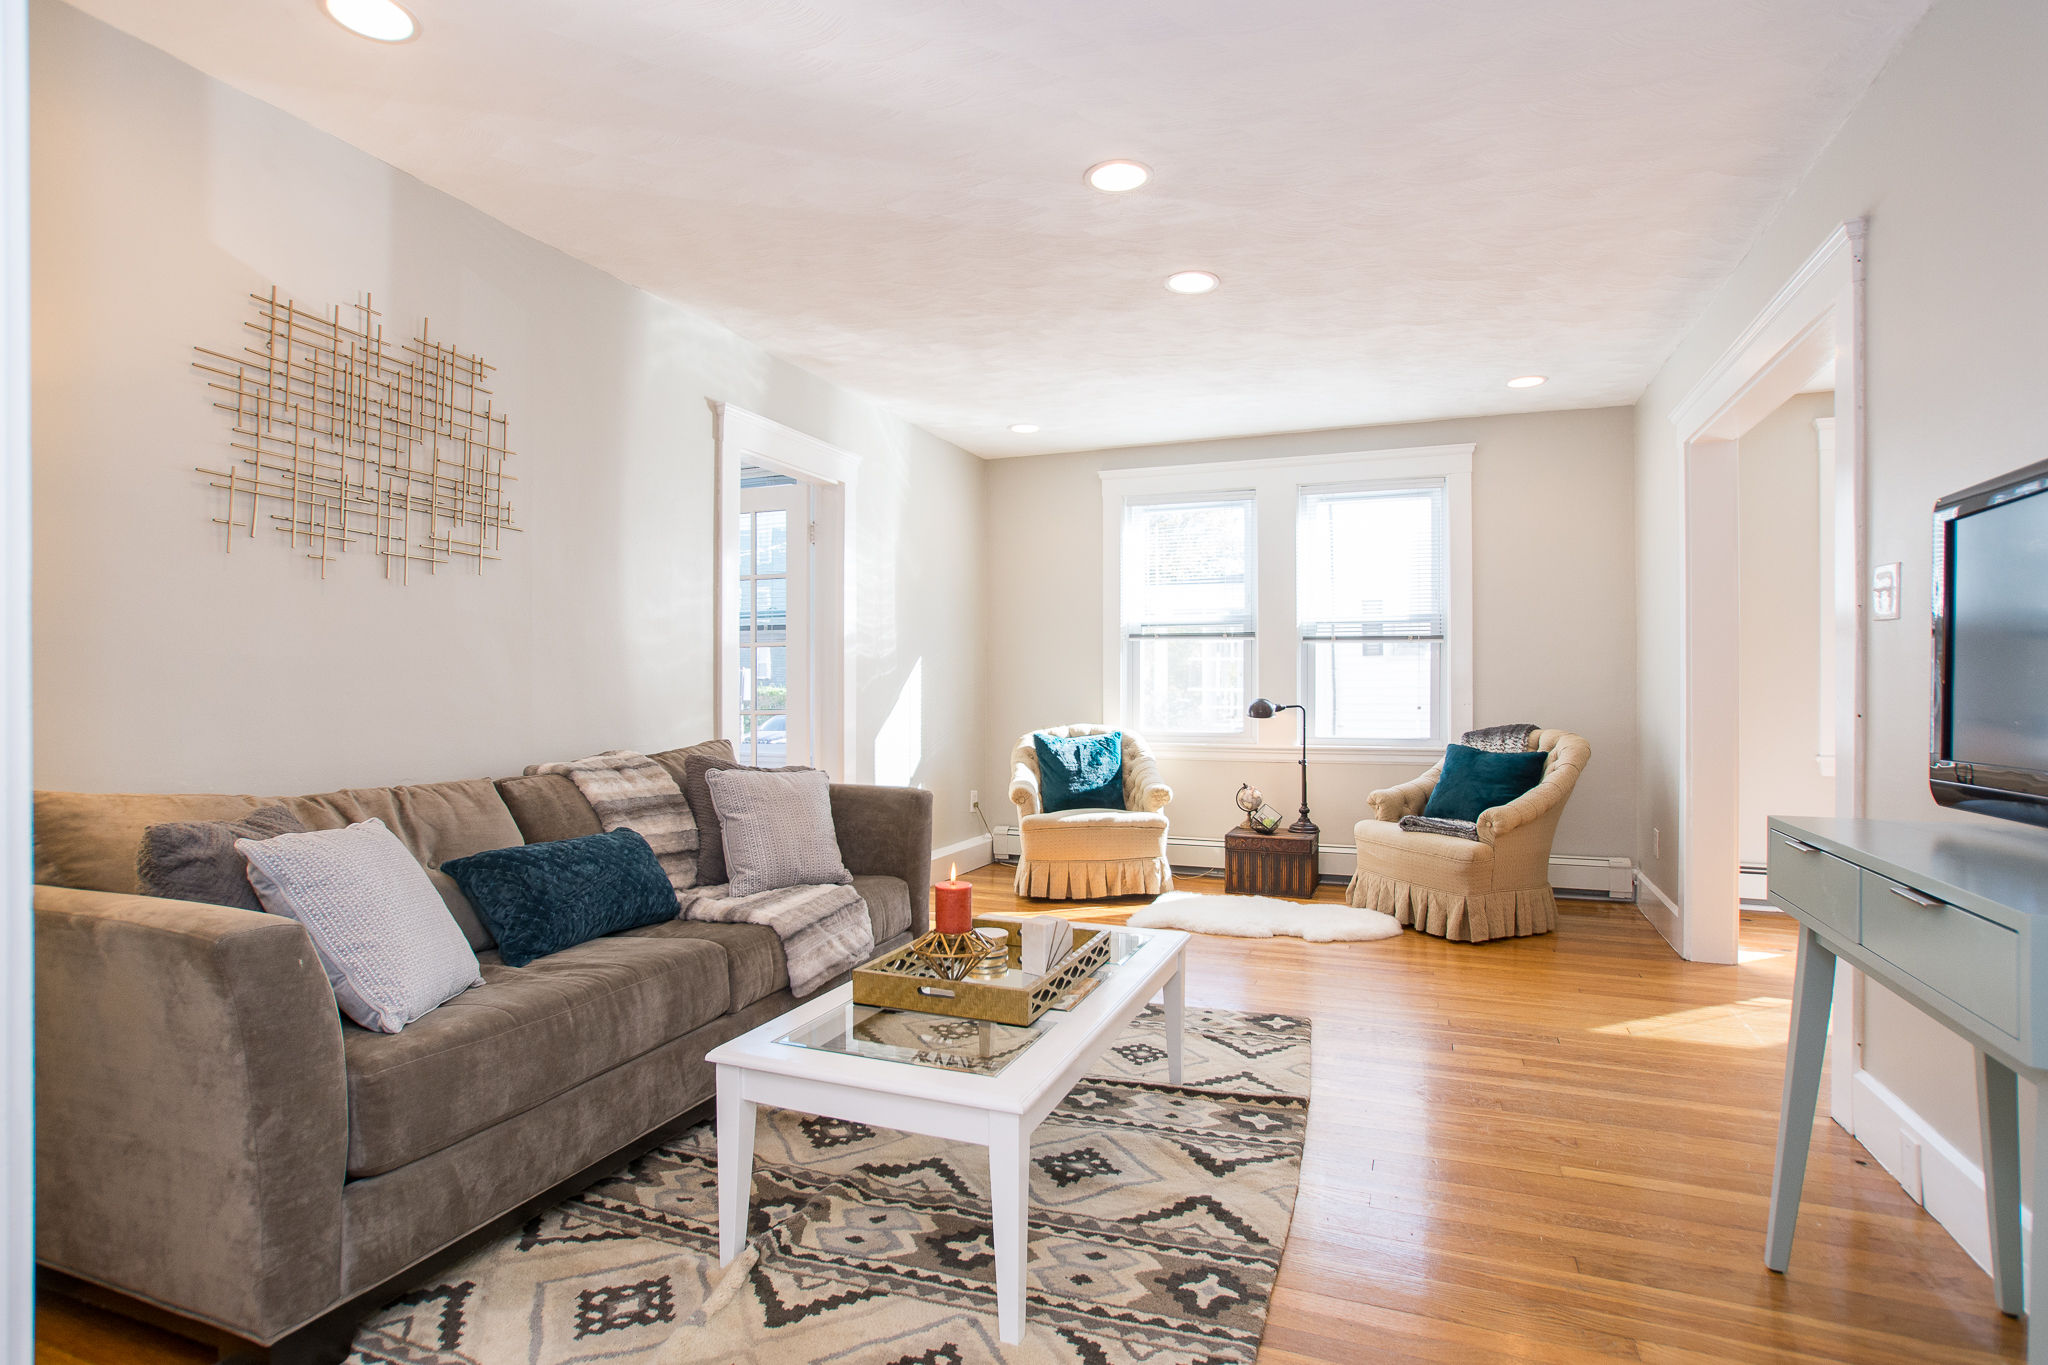 86 Turner St.; #1, Brighton, MA - Living room